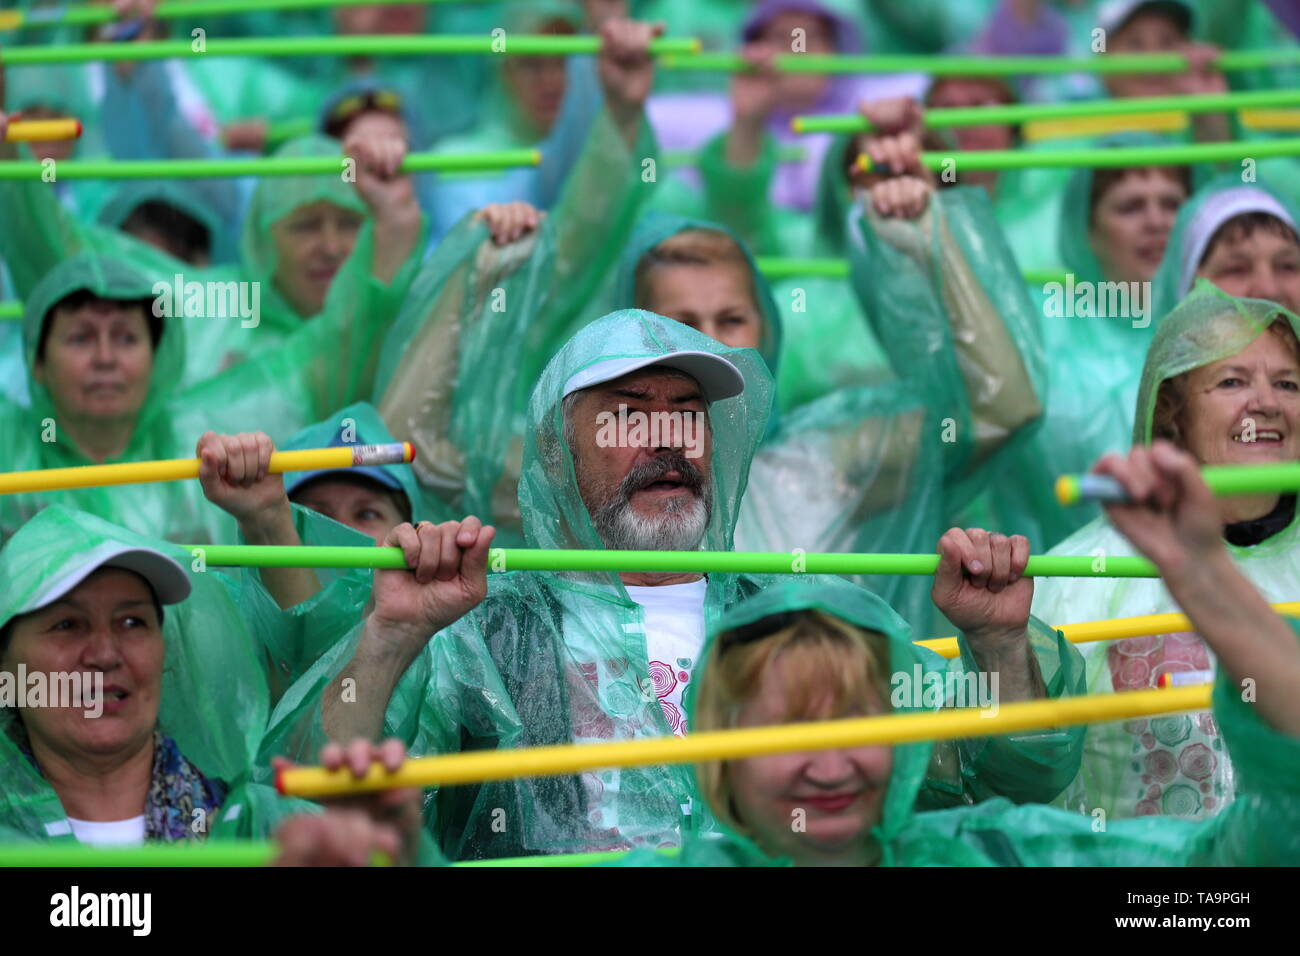 Moscow, Russia. 23rd May, 2019. MOSCOW, RUSSIA - MAY 23, 2019: Senior citizens participating in the Moscow Longevity project set a world record of 'the most populous exercise with sticks' among people of older age, at the opening of a summer season at Moscow's Muzeon Park. Sergei Savostyanov/TASS Credit: ITAR-TASS News Agency/Alamy Live News - Stock Image